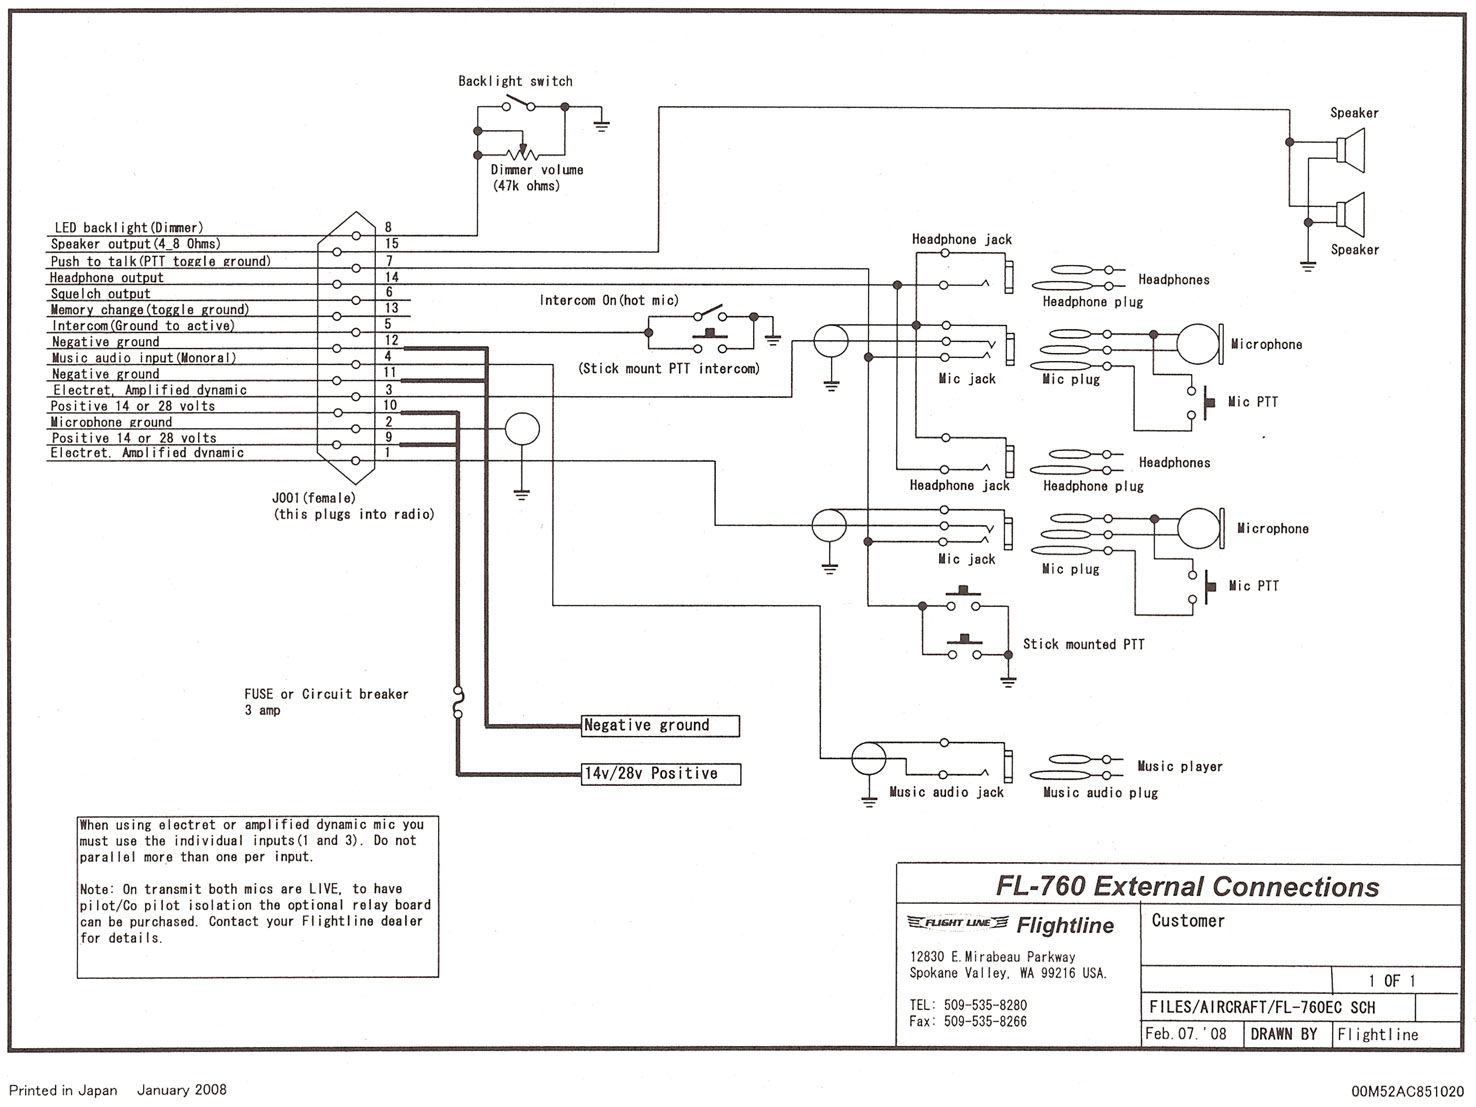 fl_760_wiring_diagram_179 saturn ion redline radio wiring diagram efcaviation com aircraft wiring diagram manual pdf at alyssarenee.co